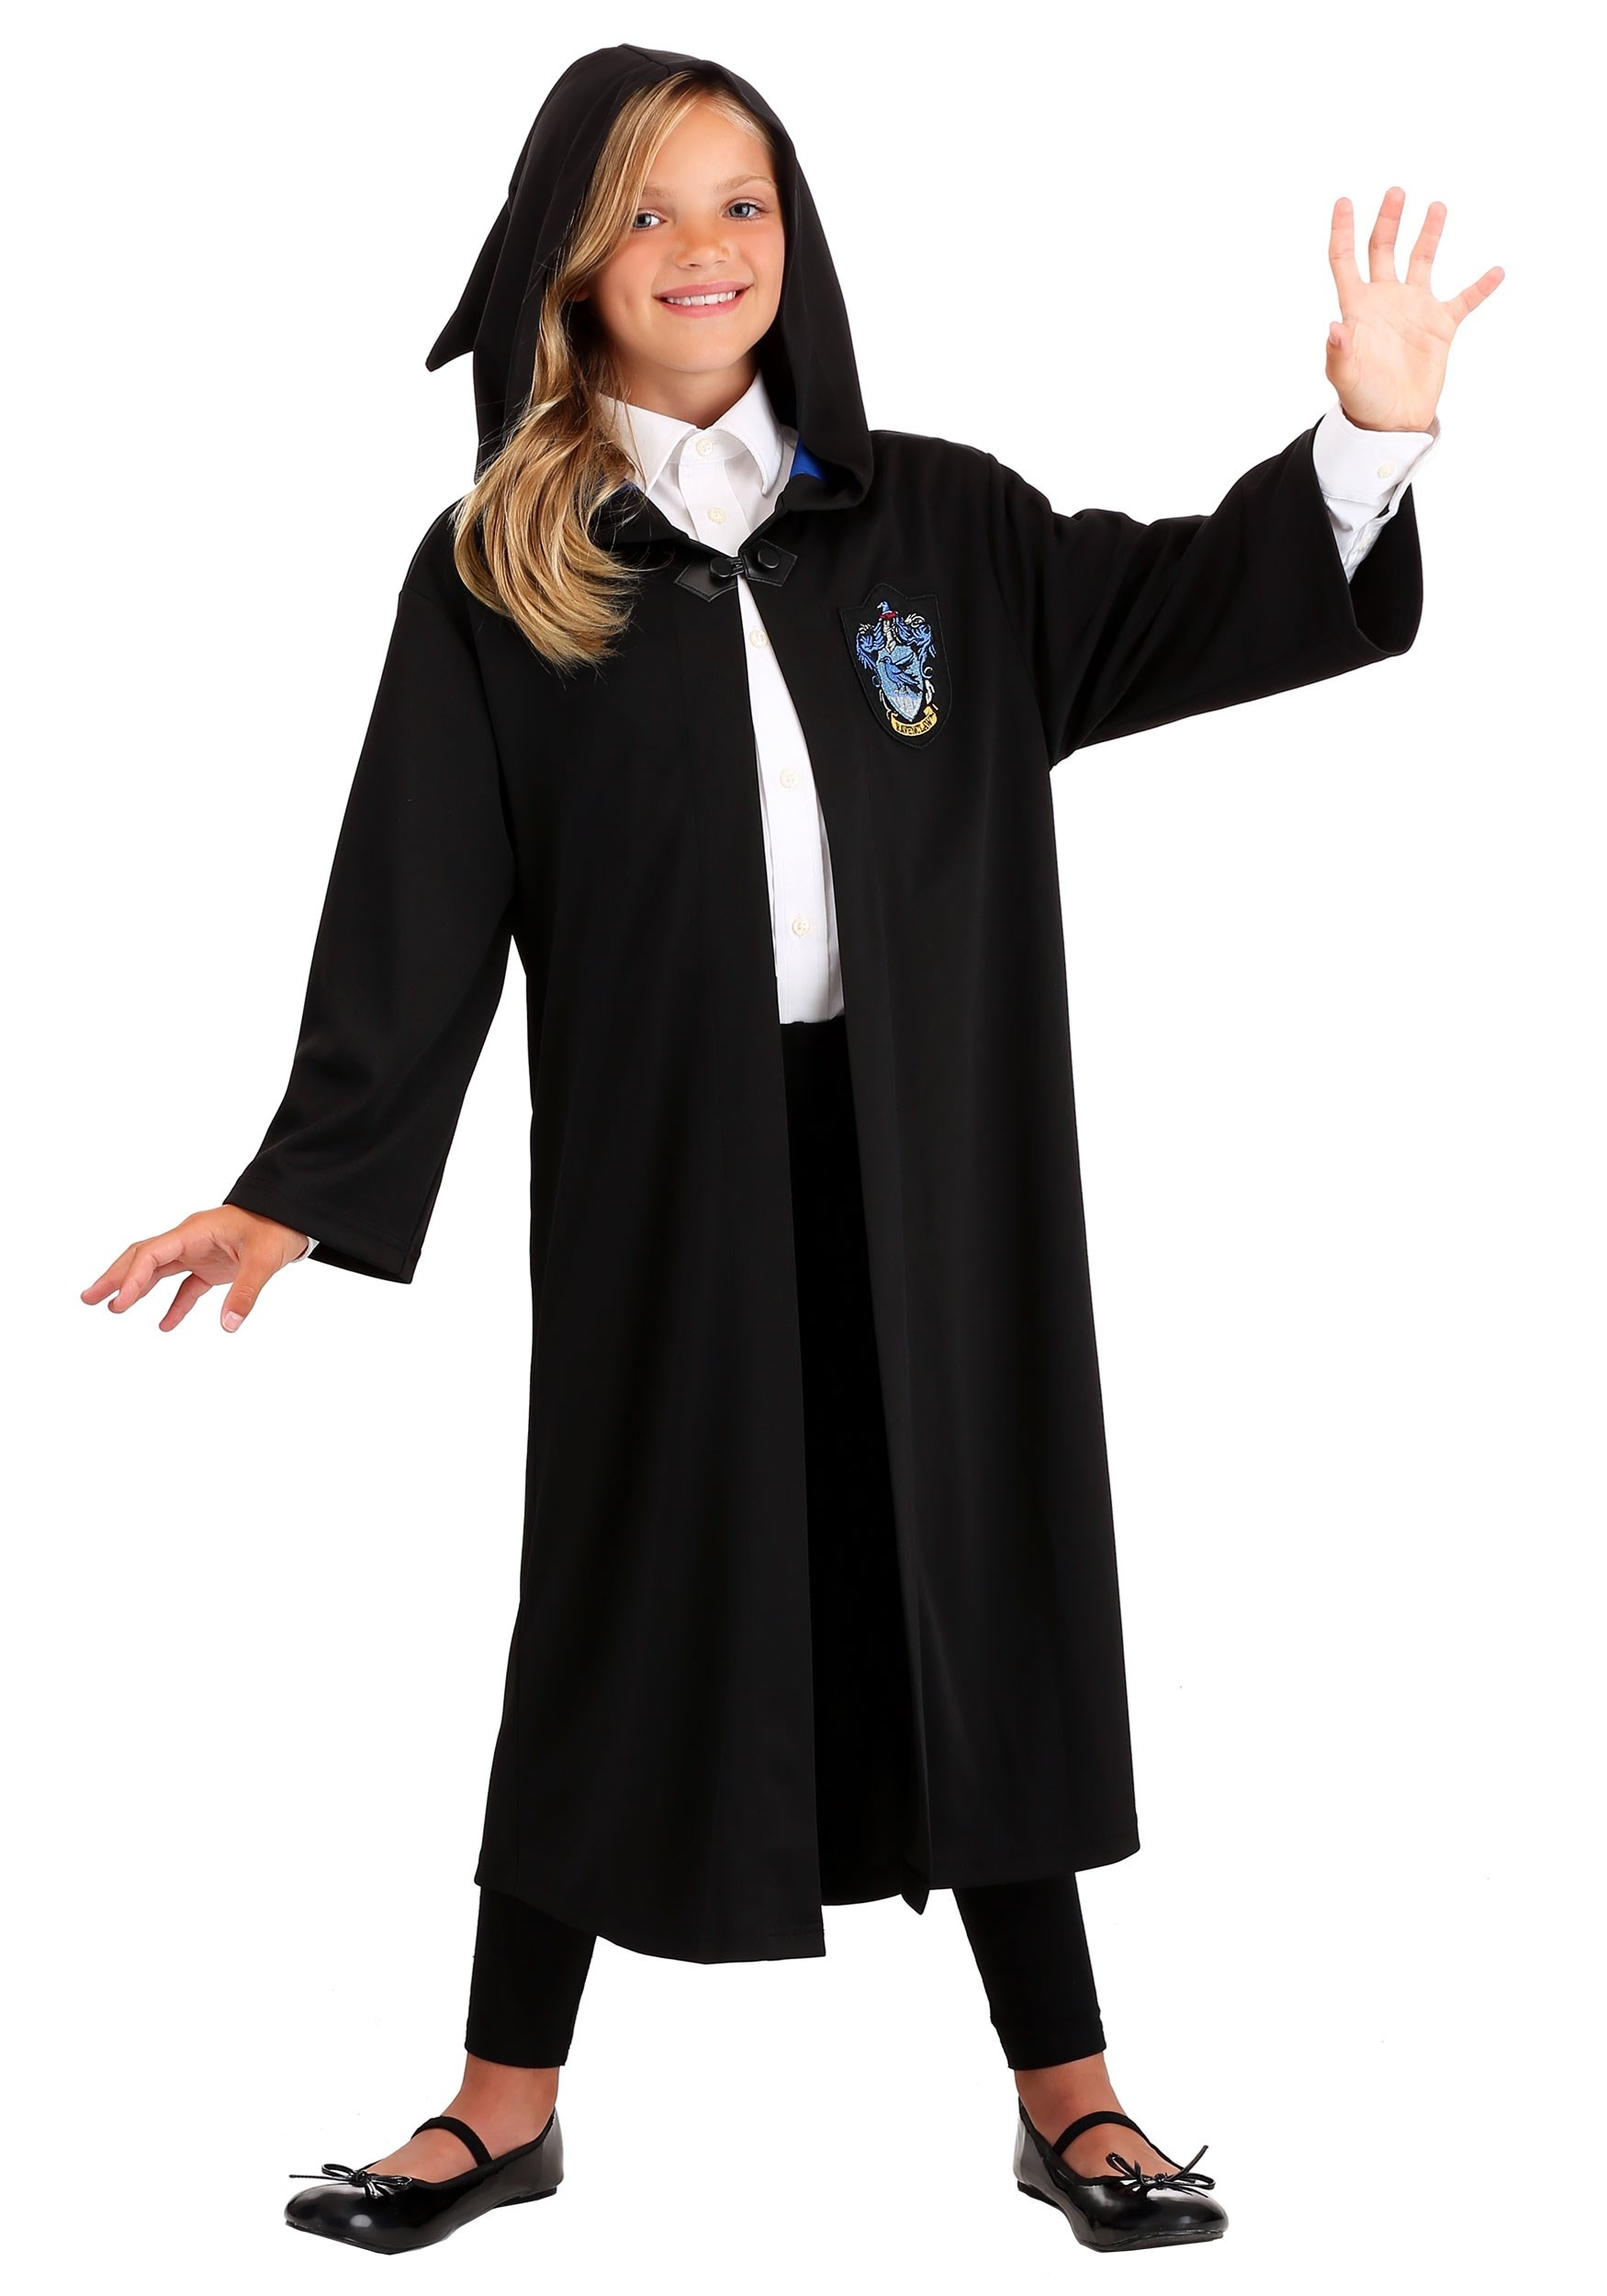 Boys Child HARRY POTTER Ravenclaw Robe Costume Outfit